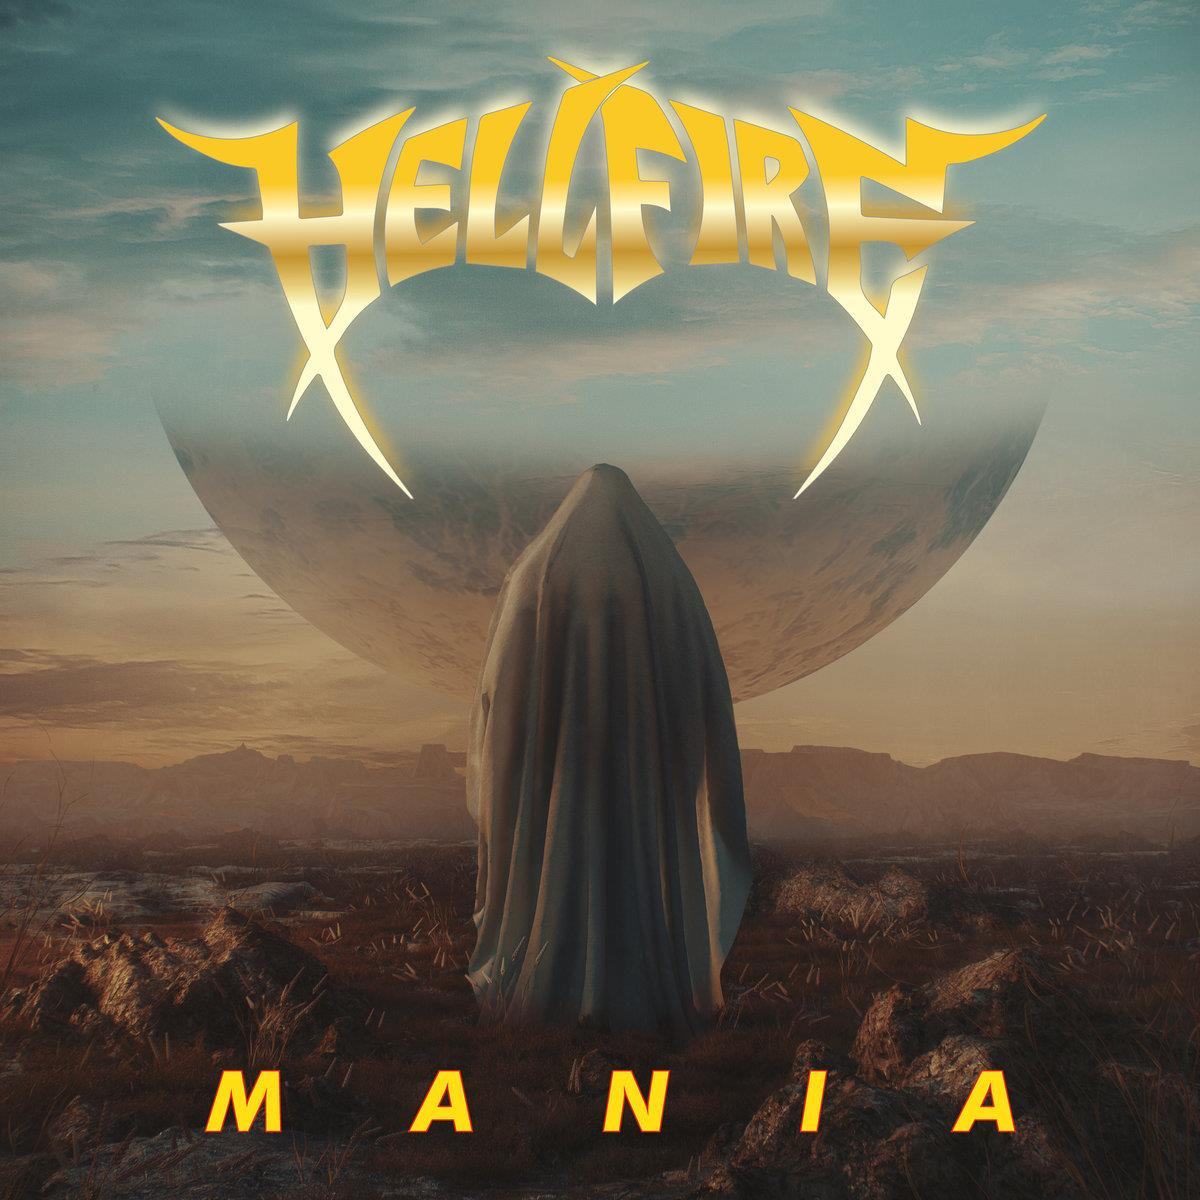 EZRDR102LP   Hell Fire Mania (LP)